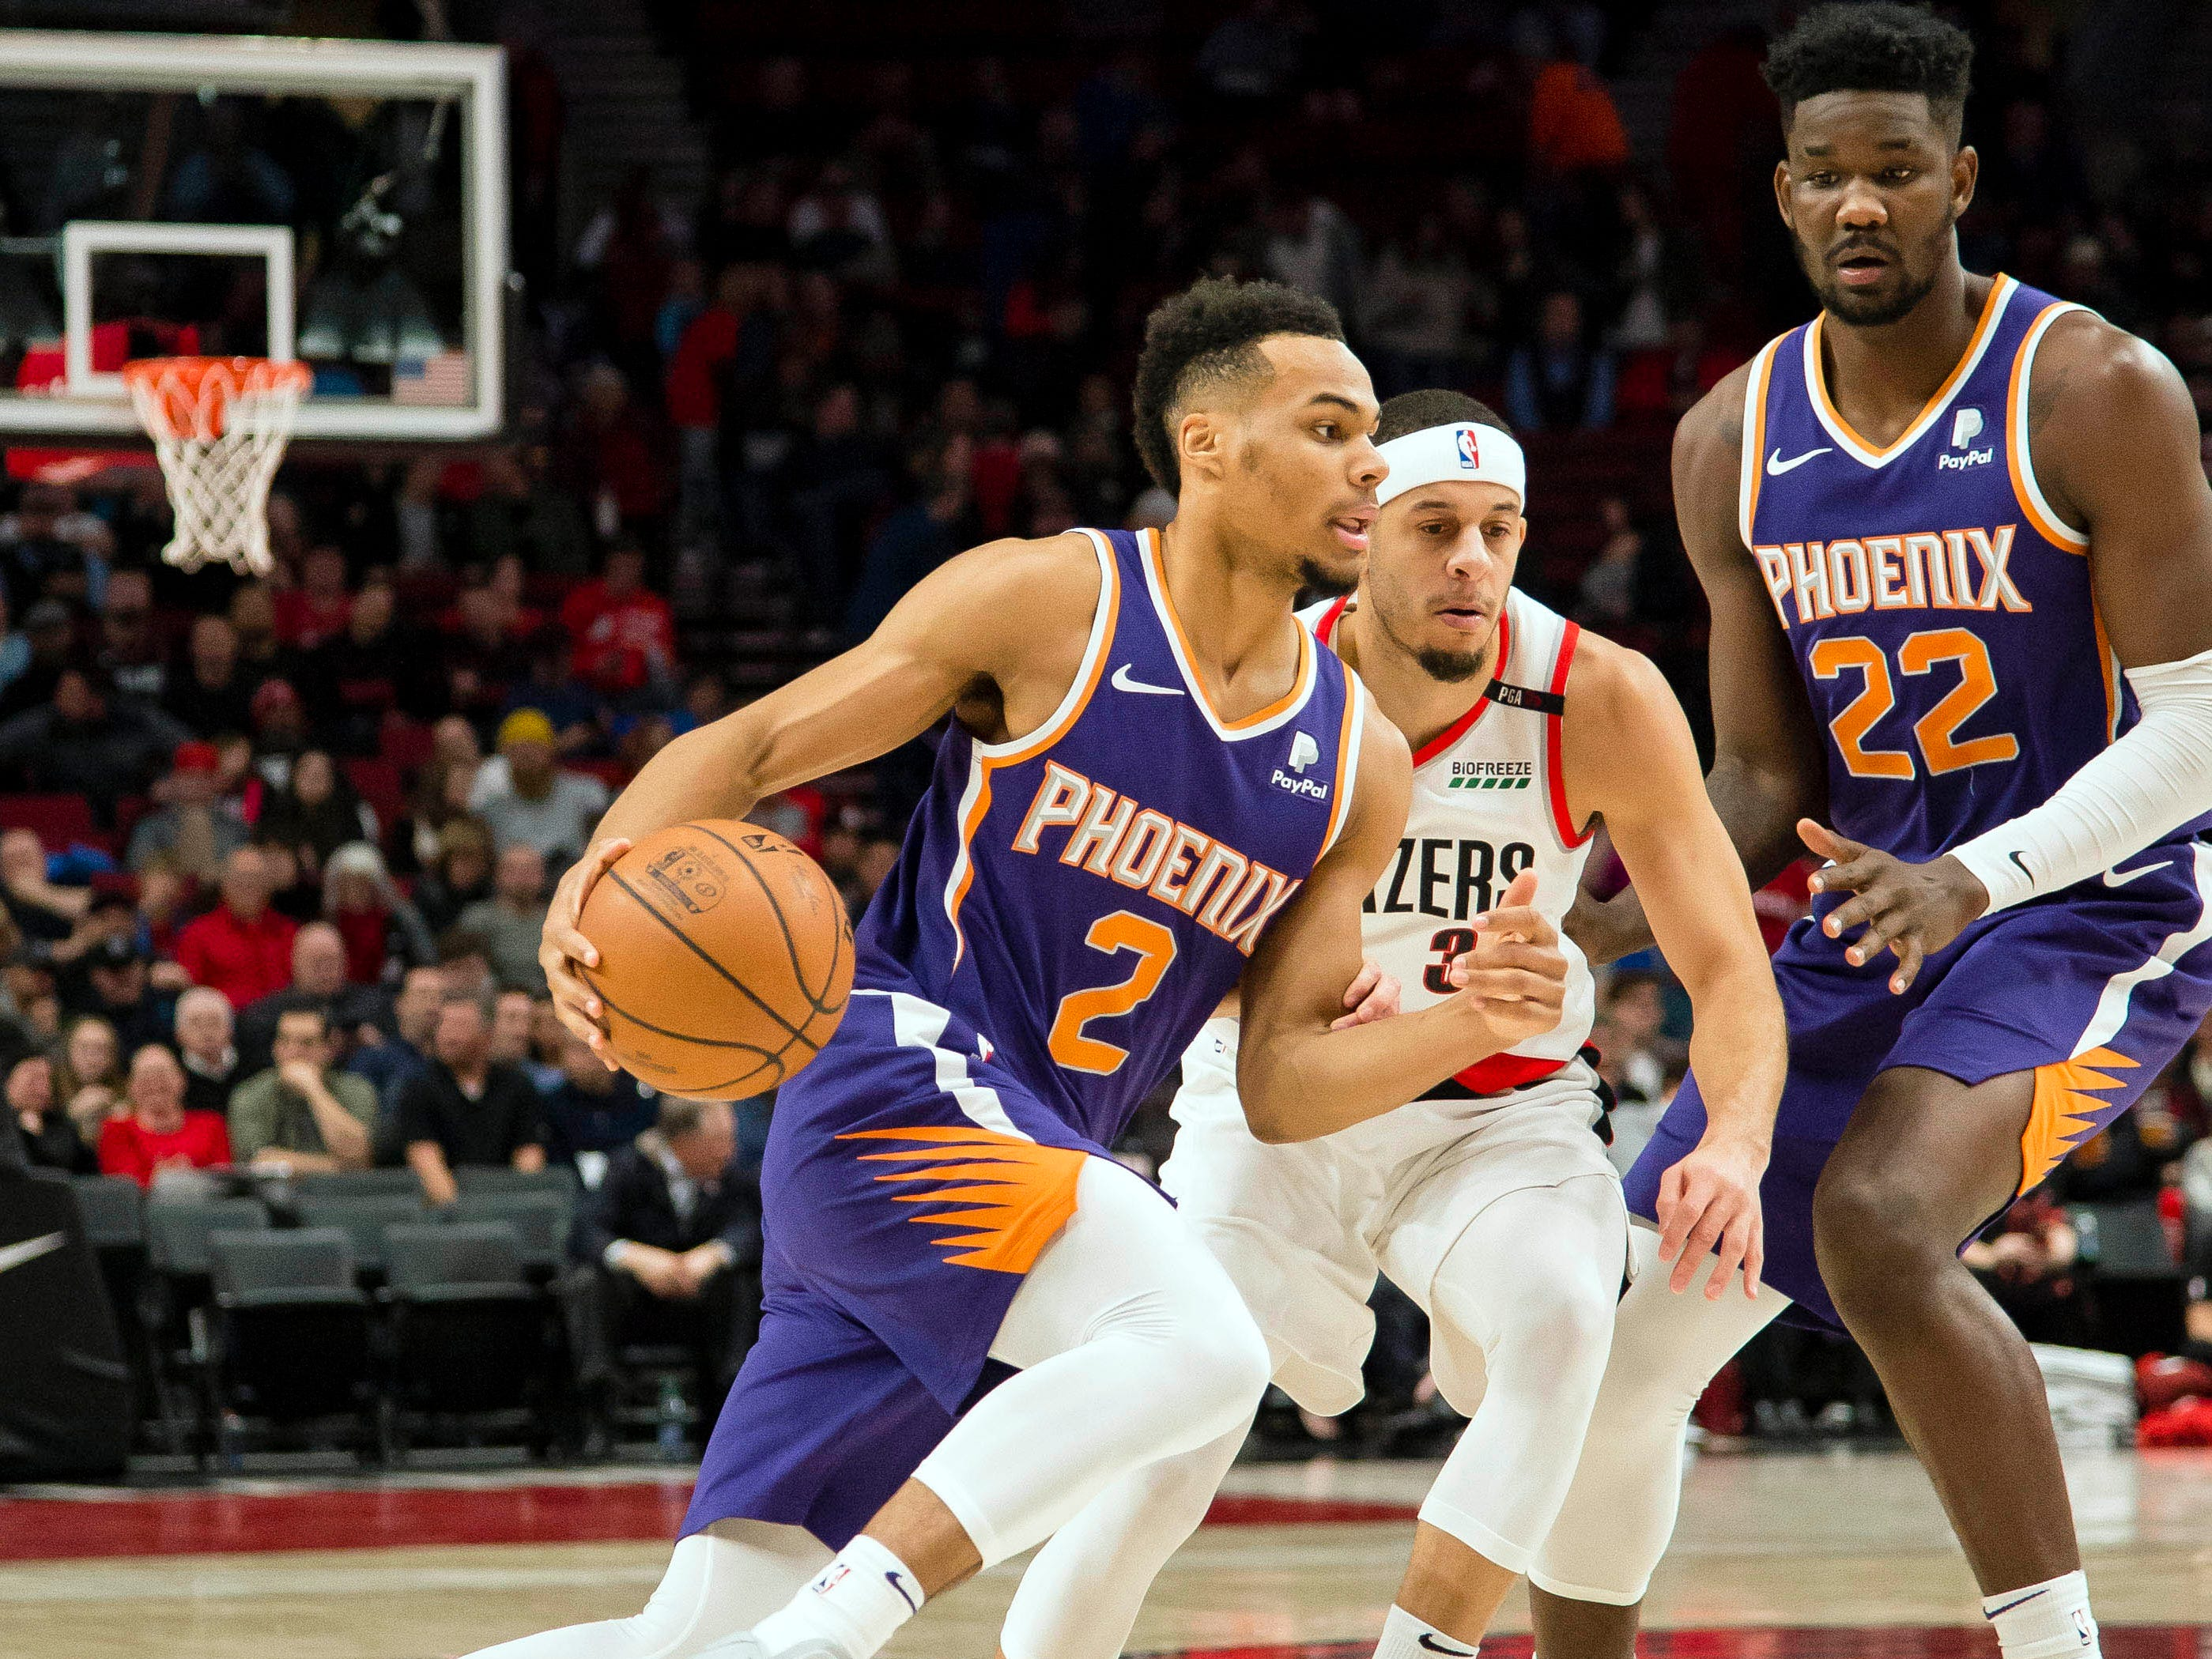 Dec 6, 2018; Portland, OR, USA; Phoenix Suns guard Elie Okobo (2) drives to the basket against Portland Trail Blazers guard Seth Curry (31) during the first half at Moda Center. Mandatory Credit: Troy Wayrynen-USA TODAY Sports